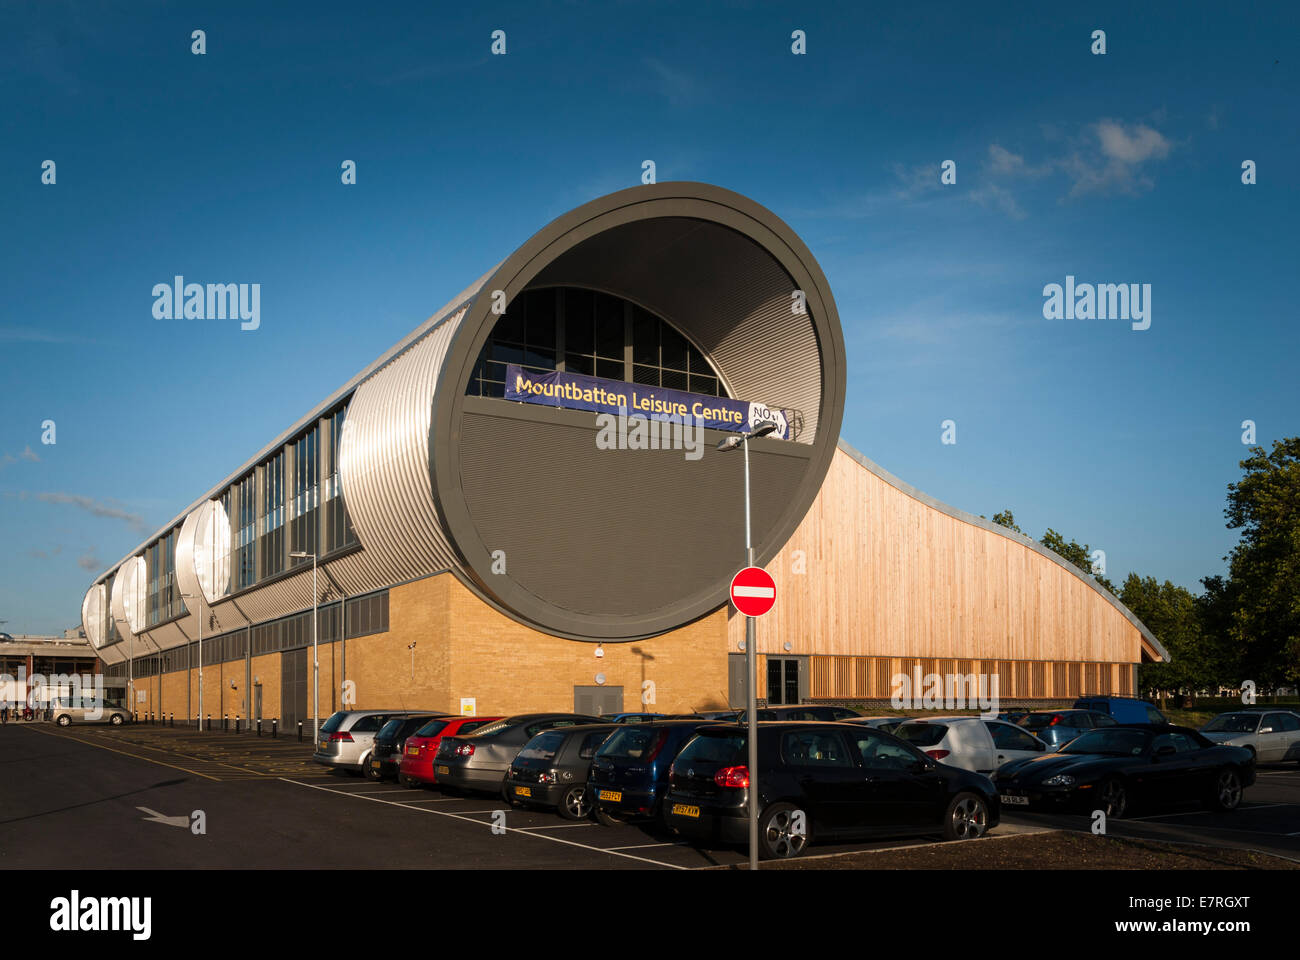 Exterior of Mountbatten leisure centre Portsmouth - Stock Image